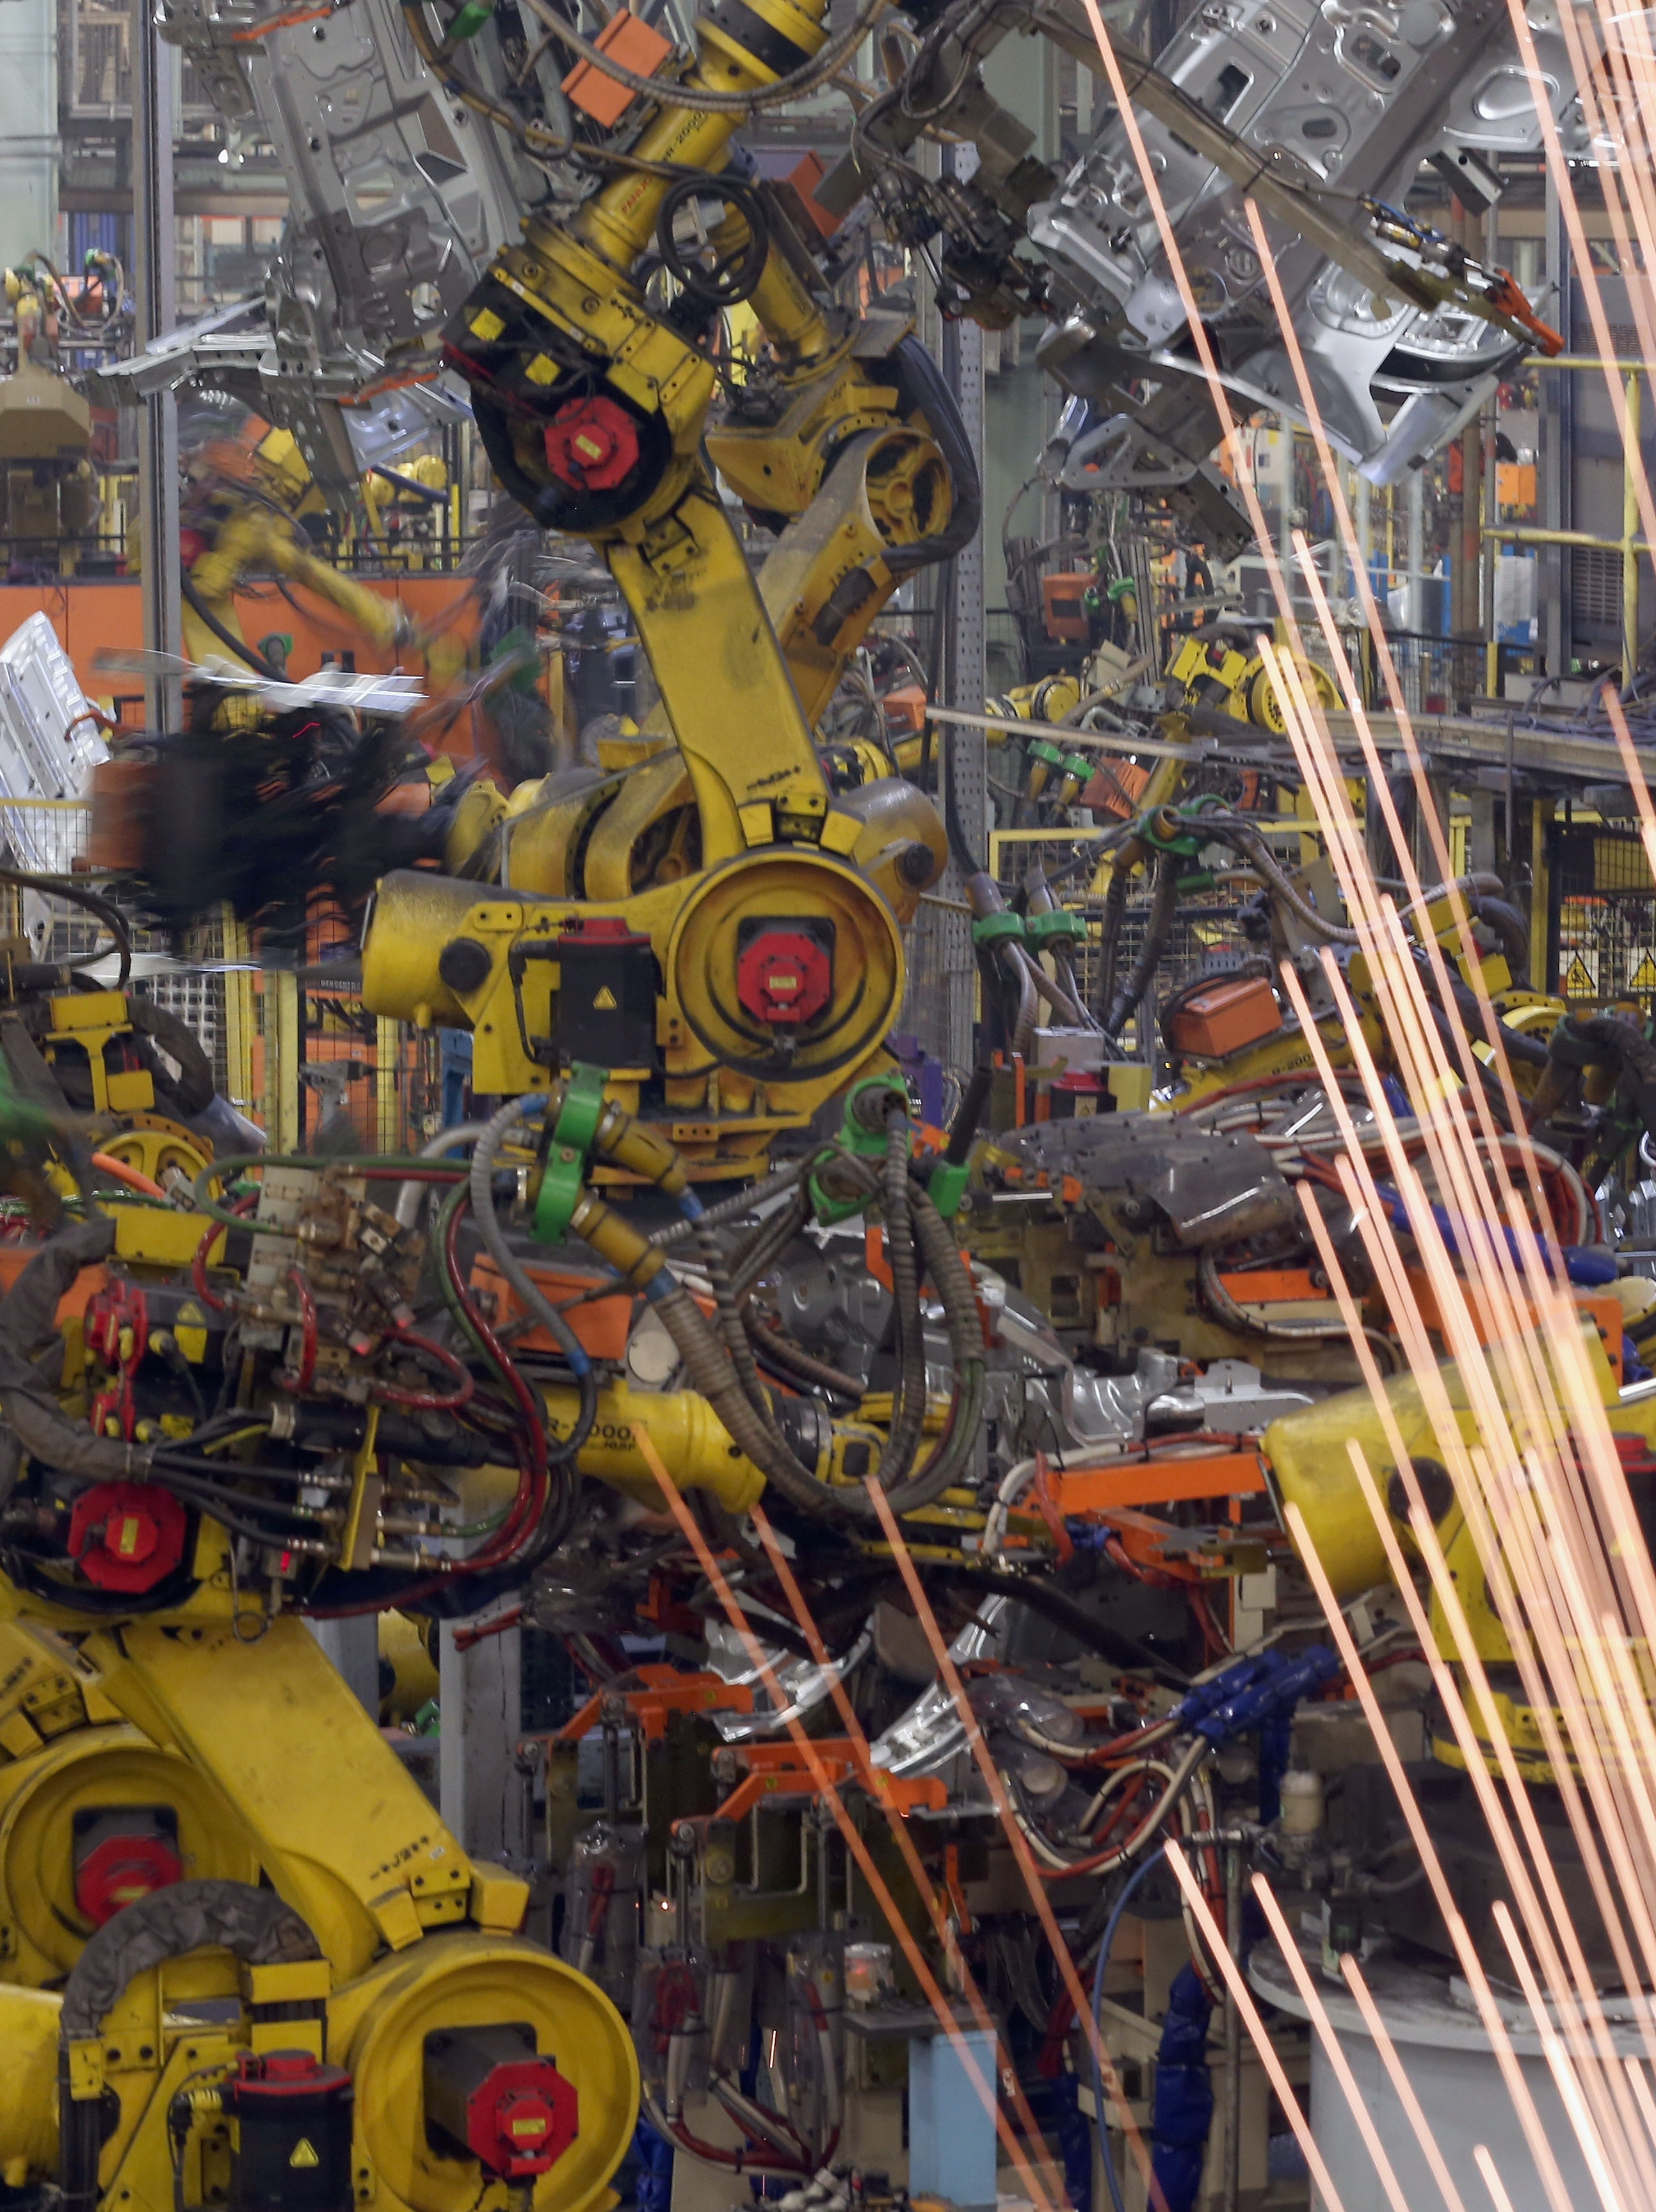 Robotic arms assemble and weld the body shell of a Nissan car on the production line at Nissan's Sunderland plant in England.